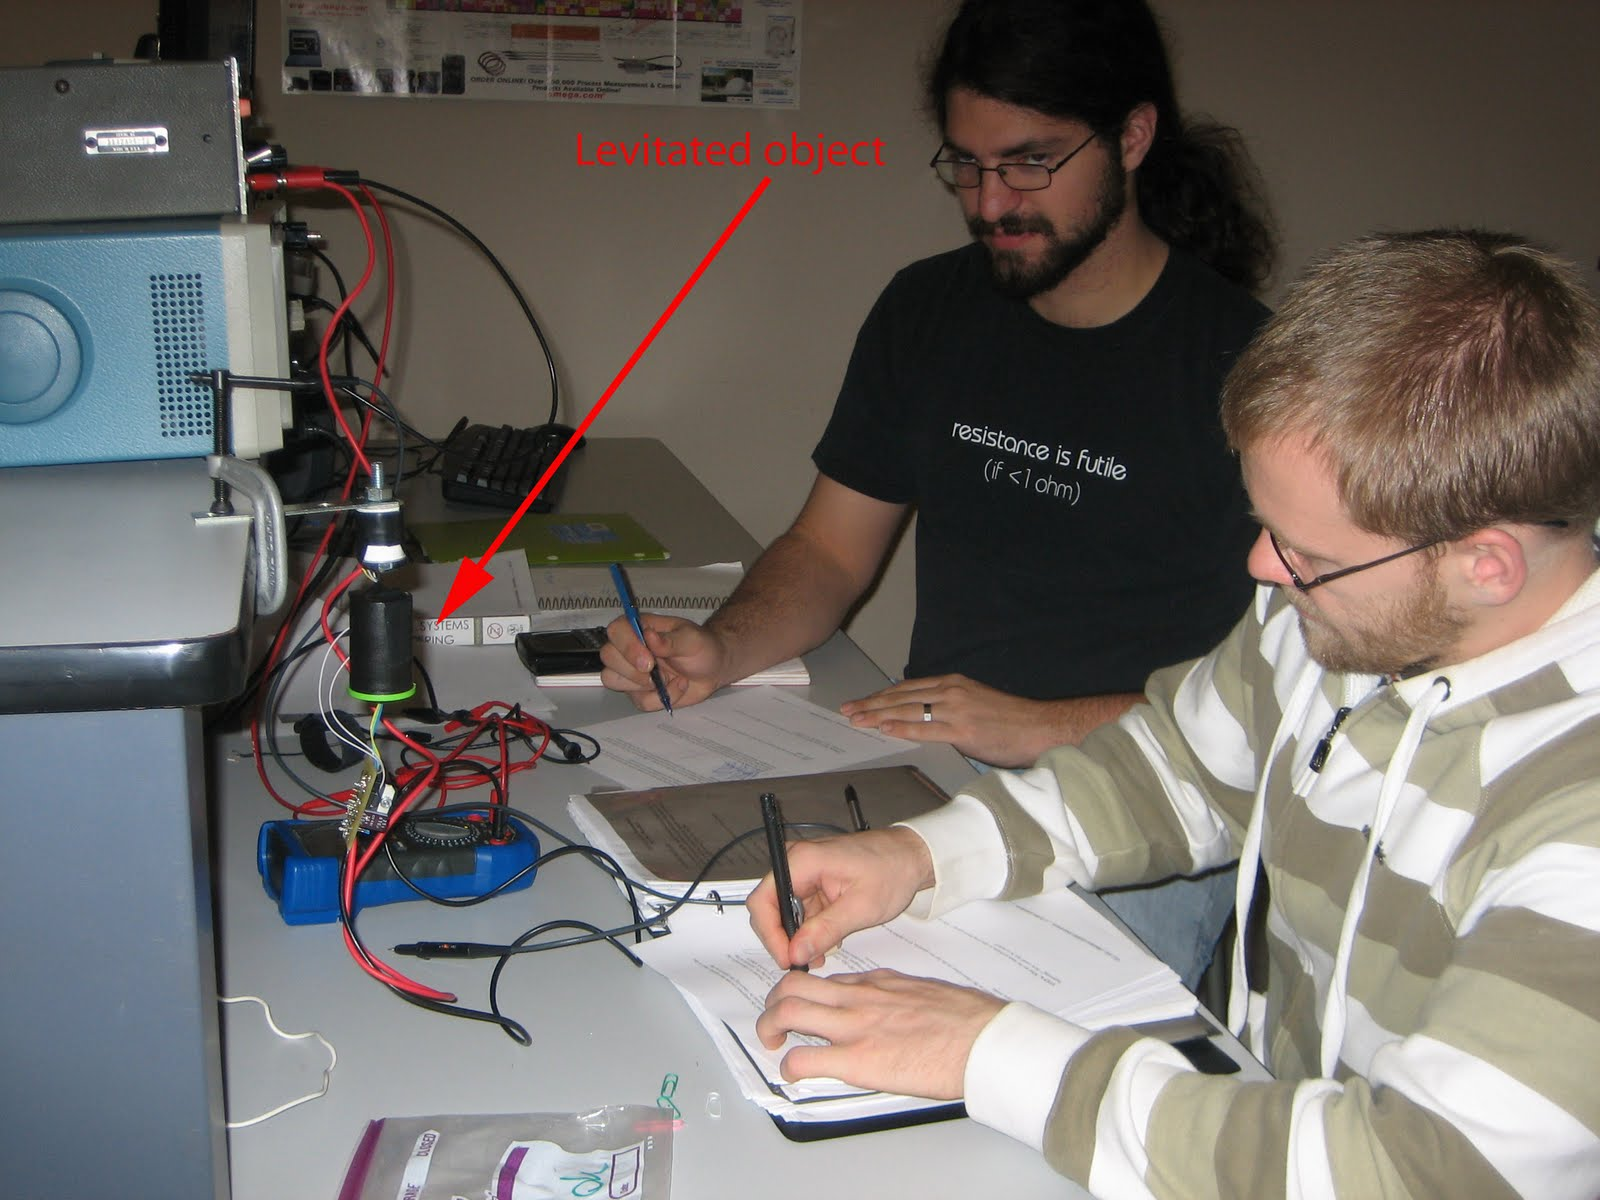 Engineering & Technology @ Penn State Wilkes-Barre: Magnetic